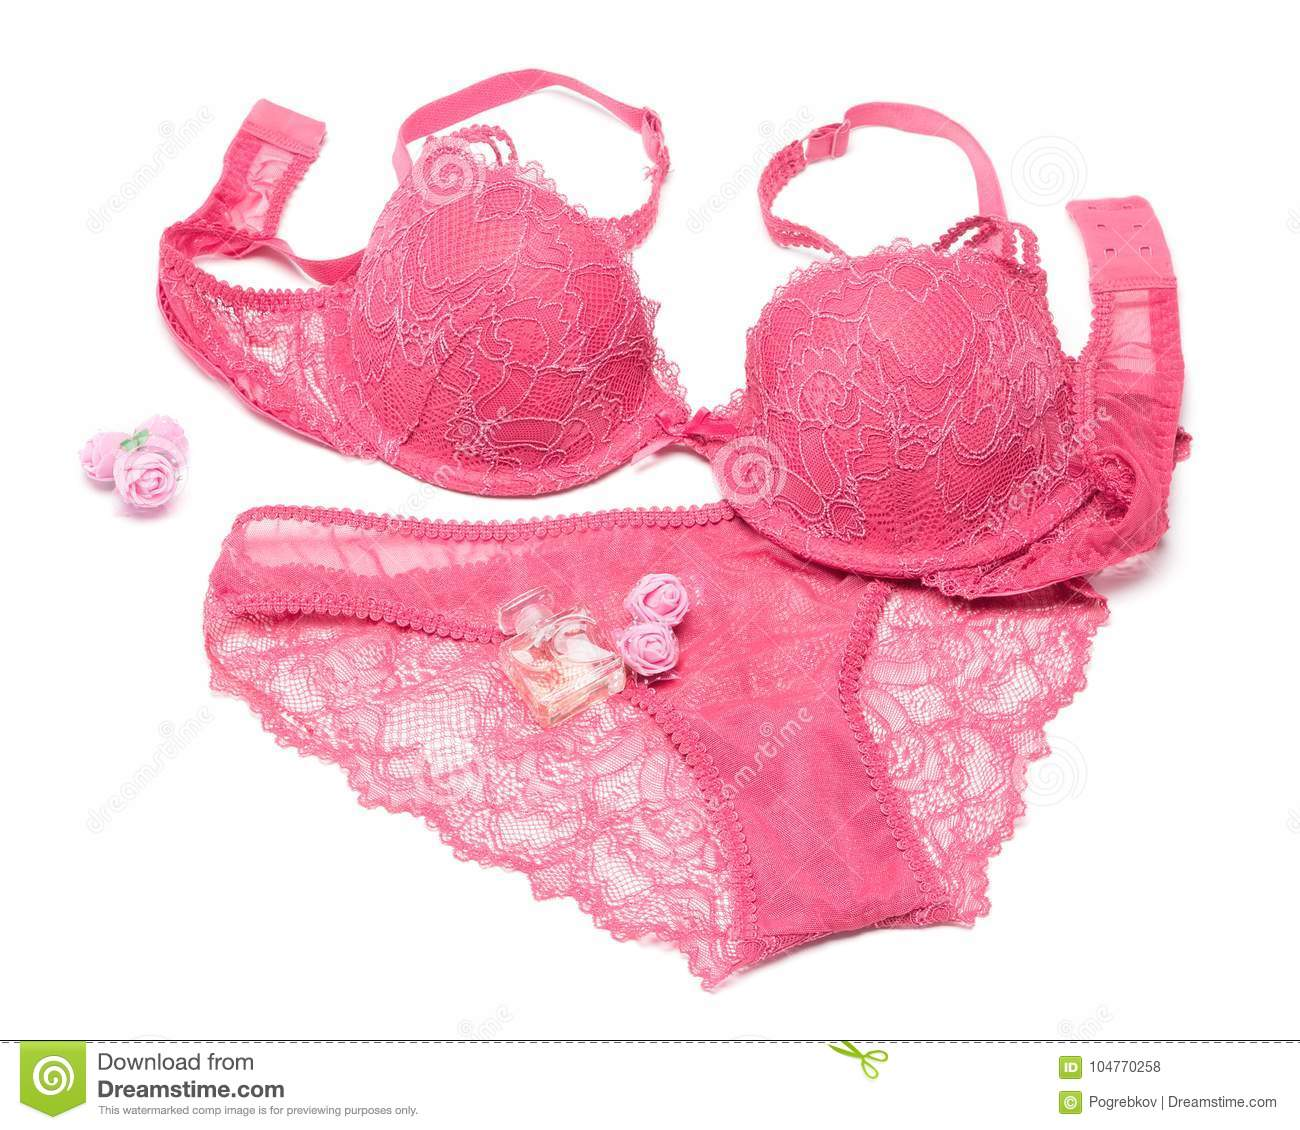 a5fc4e8745 lingerie set of bra and panty with perfume and small rose flowers on white  background. Glamorous woman accessories